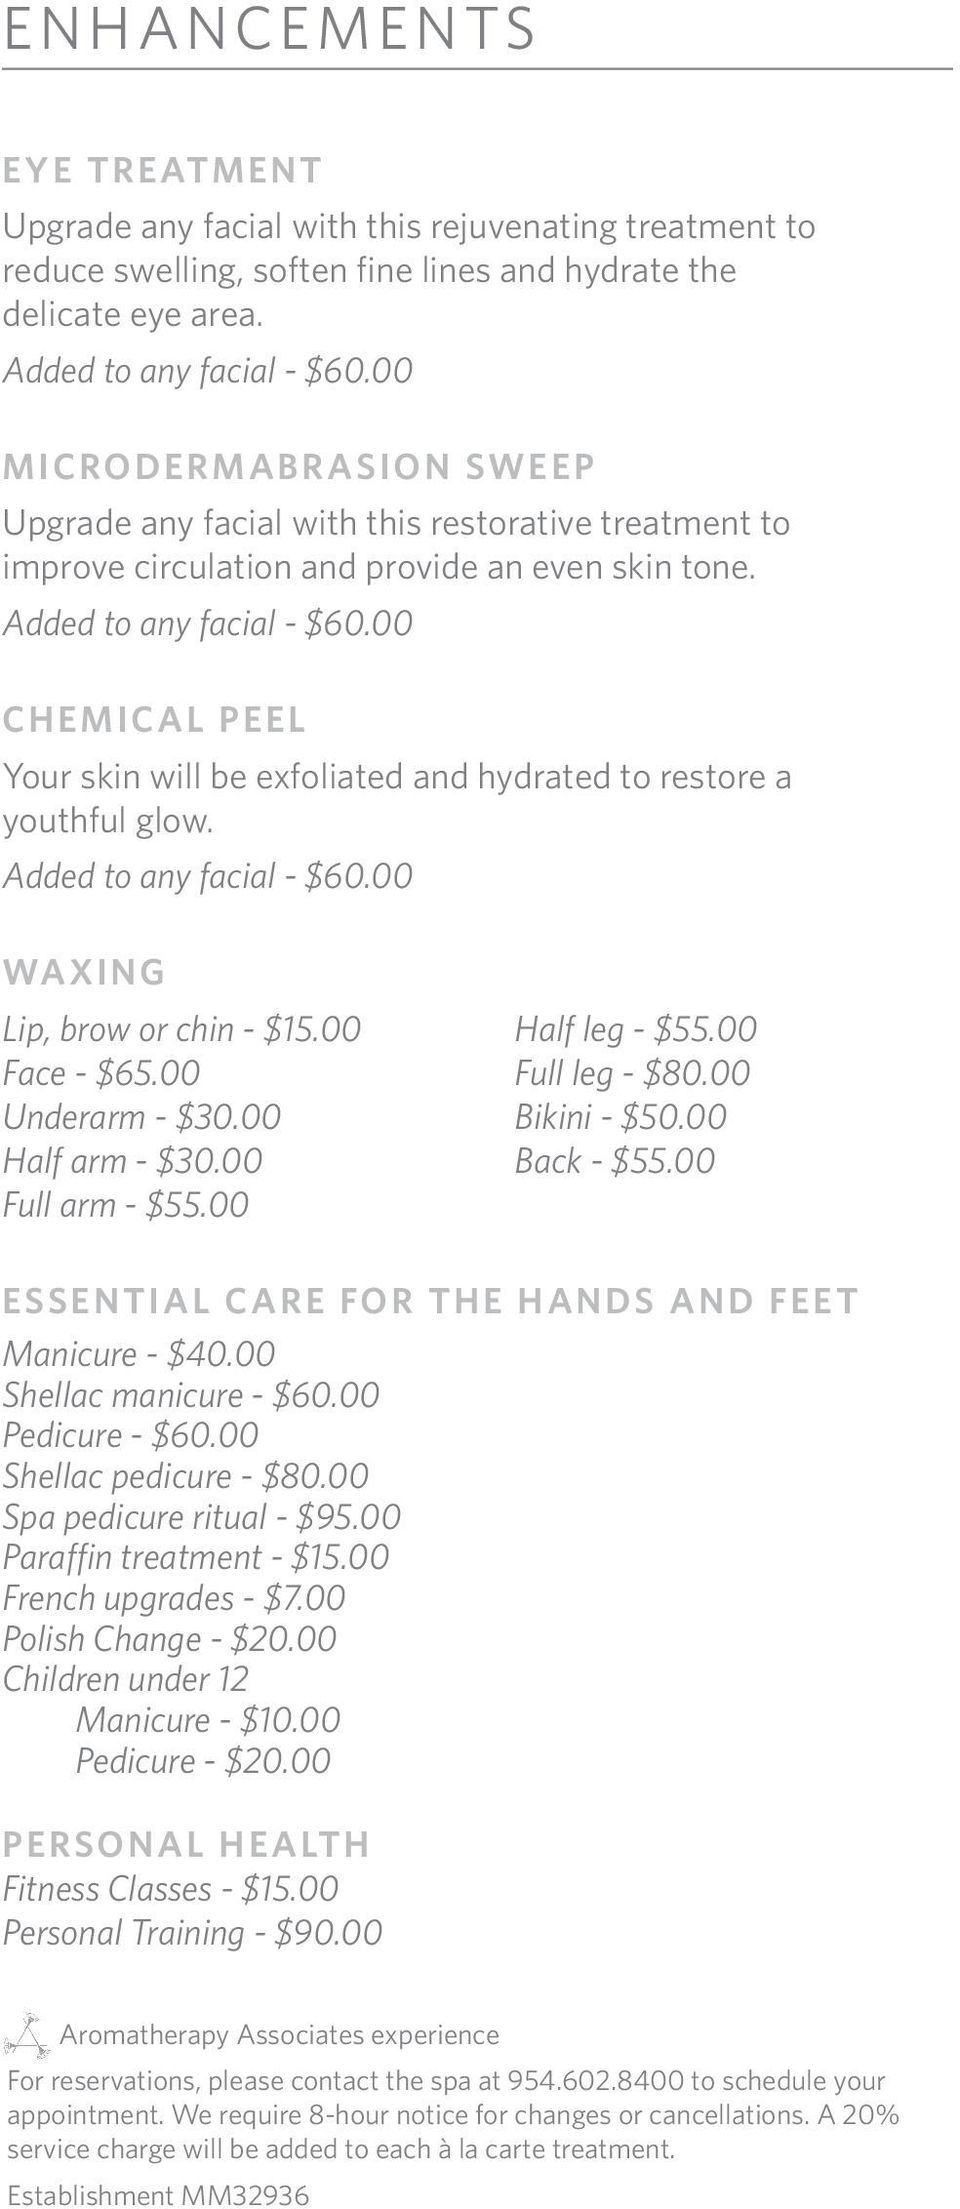 00 CHEMICAL PEEL Your skin will be exfoliated and hydrated to restore a youthful glow. Added to any facial - $60.00 WAXING Lip, brow or chin - $15.00 Half leg - $55.00 Face - $65.00 Full leg - $80.